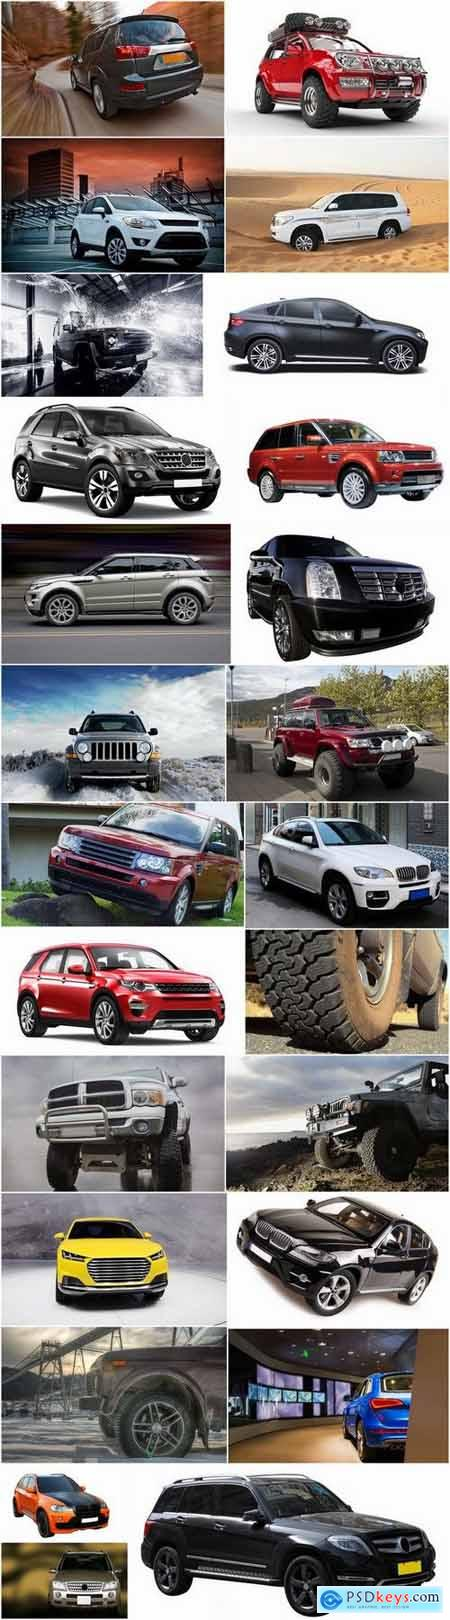 Jeep SUV big wheel dirt luxury car 25 HQ Jpeg